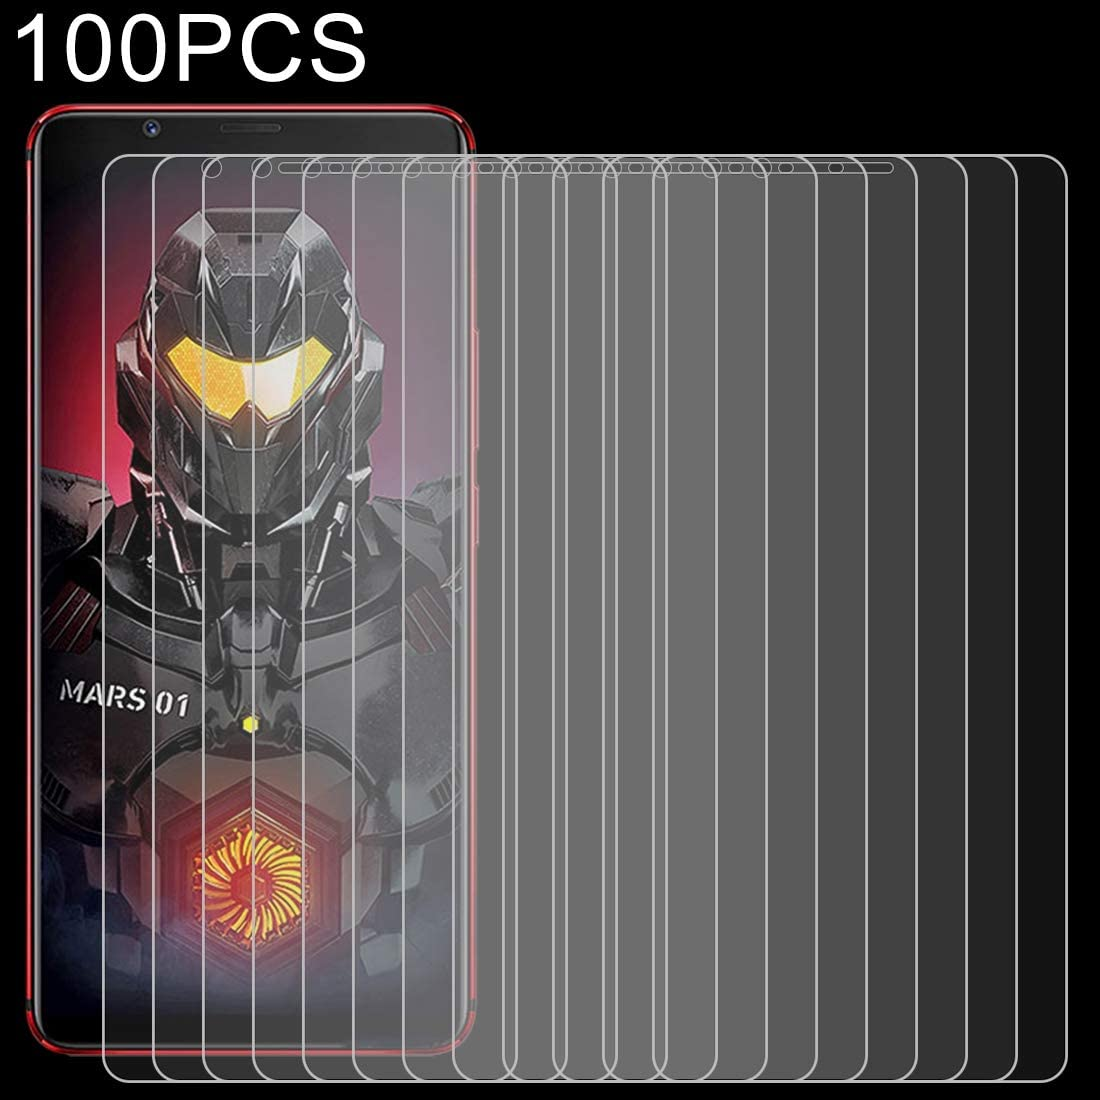 Lihuoxiu Phone Screen Protectors 100 PCS 0.26mm 9H 2.5D Explosion-Proof Tempered Glass Film for ZTE Nubia Red Magic Mars